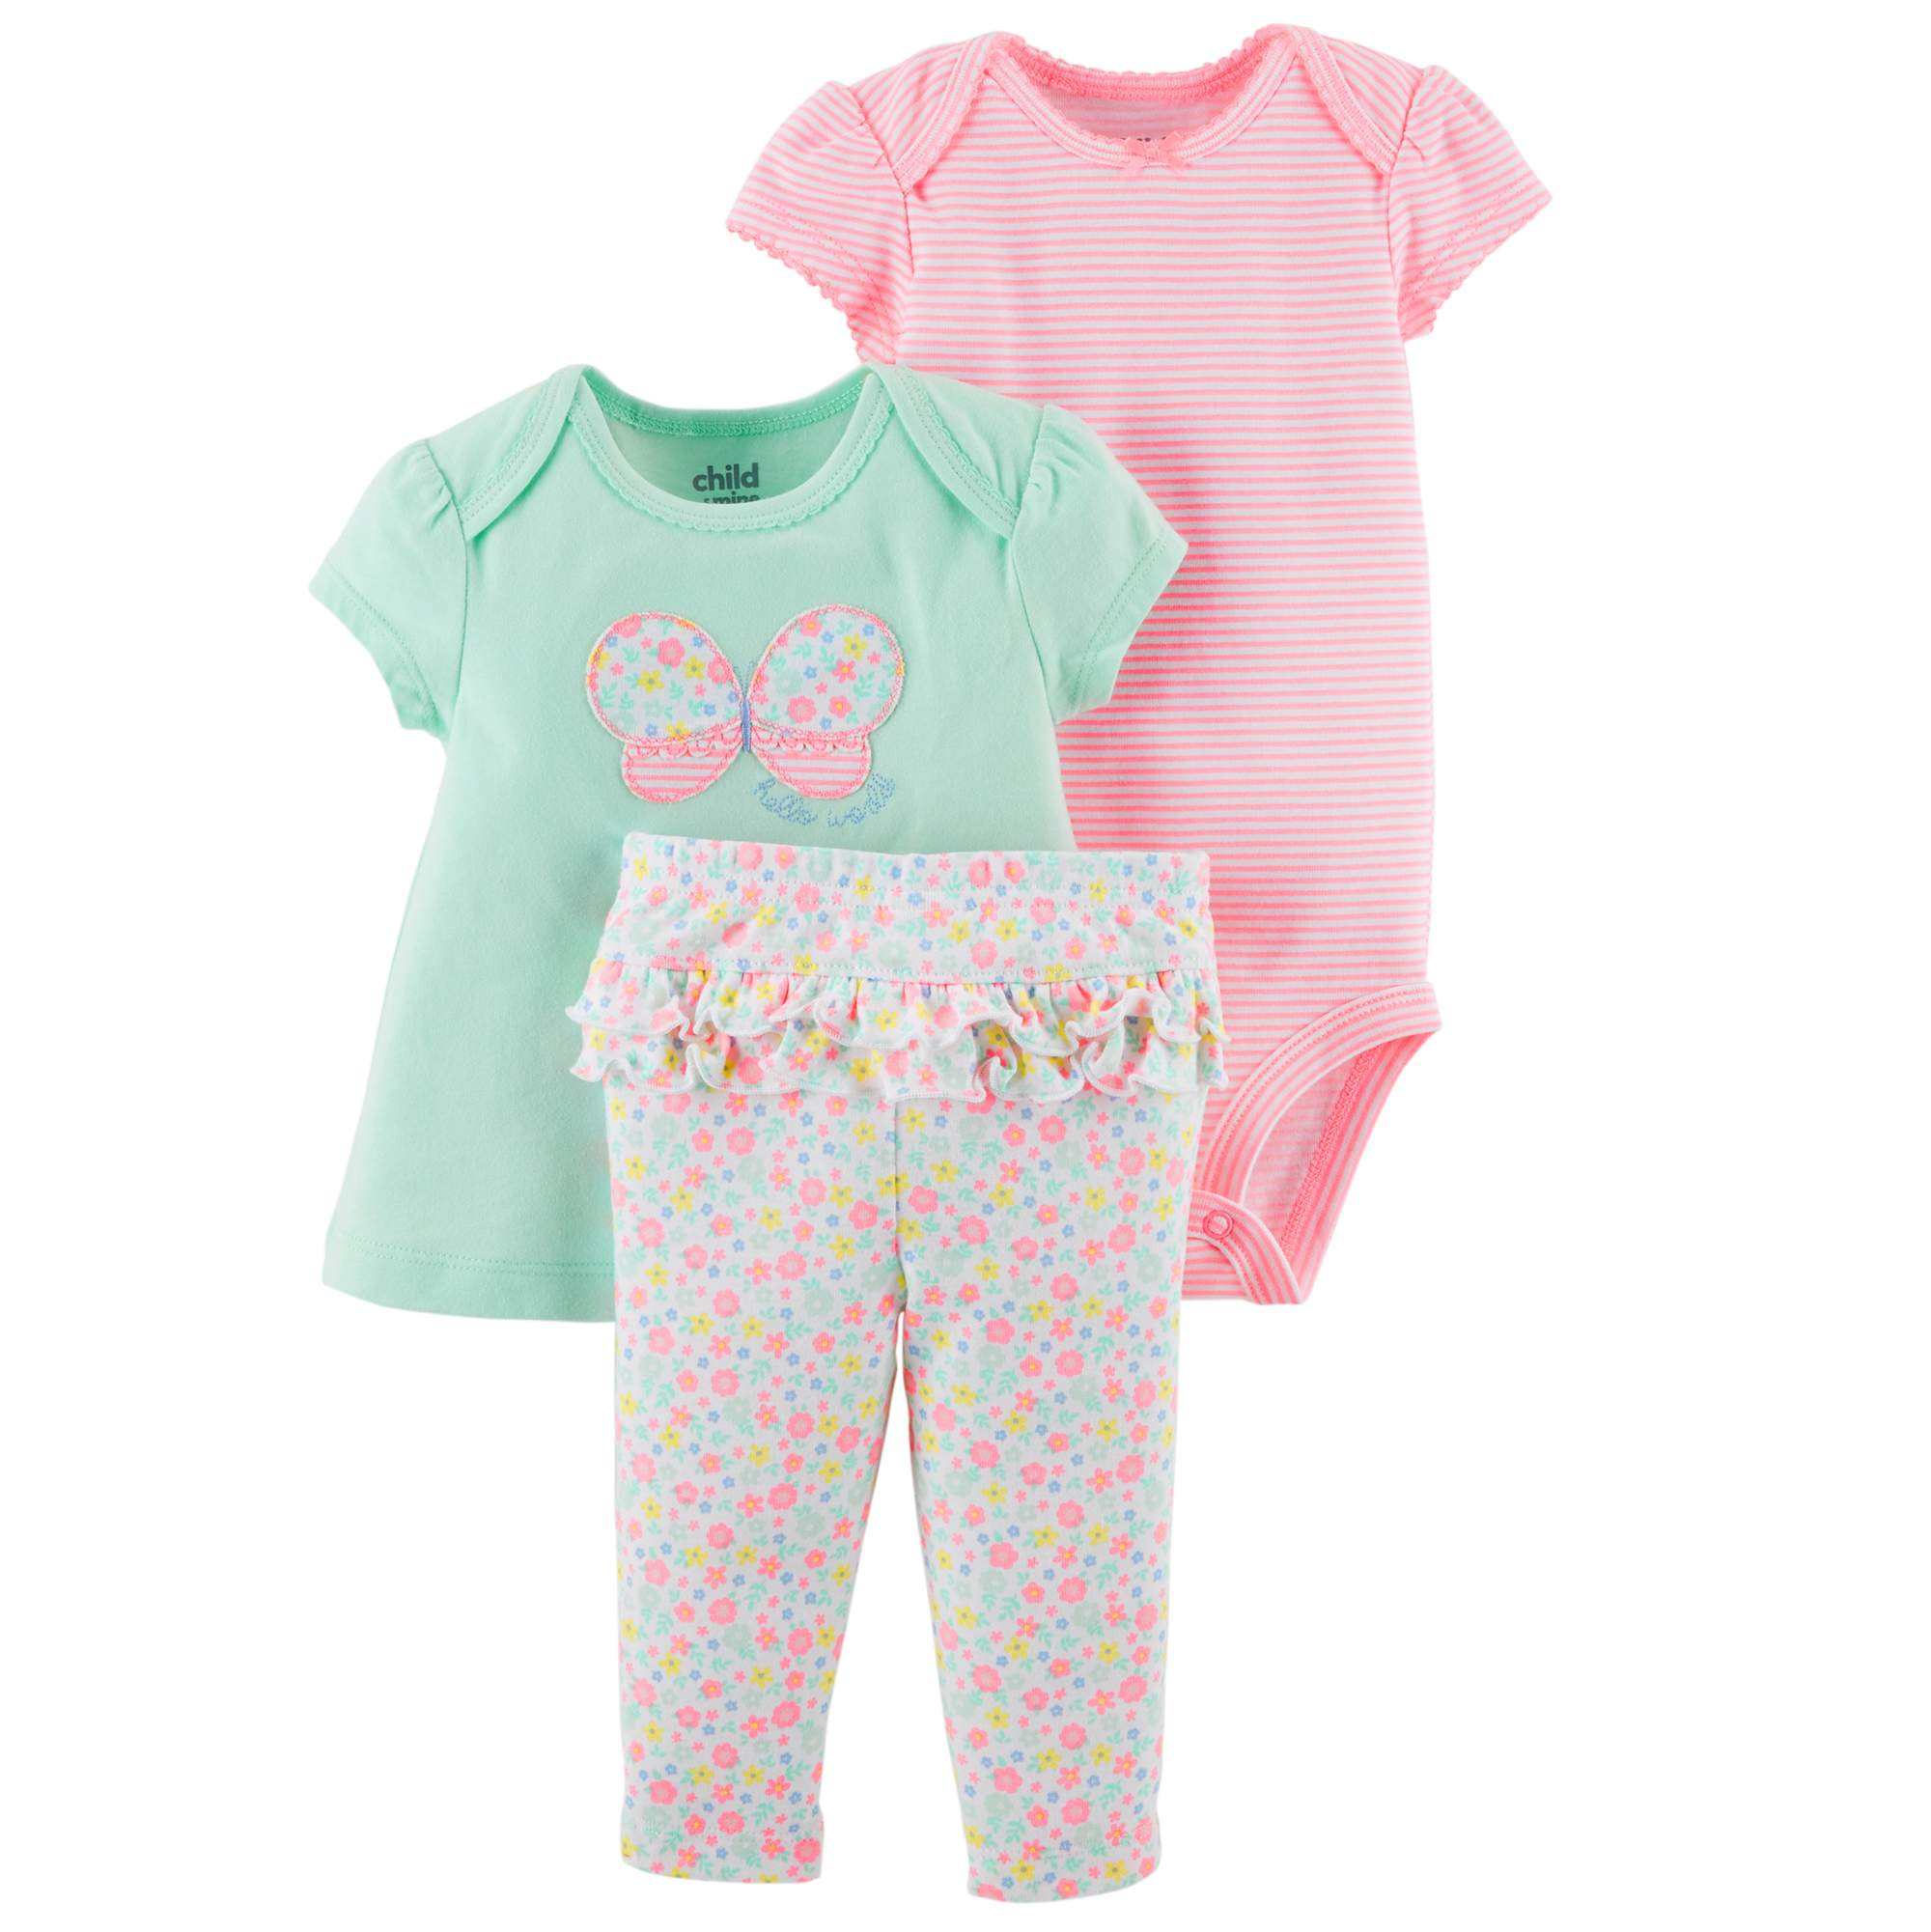 Baby Girl Swing Shirt, Bodysuit, and Pants, 3pc Outfit Set